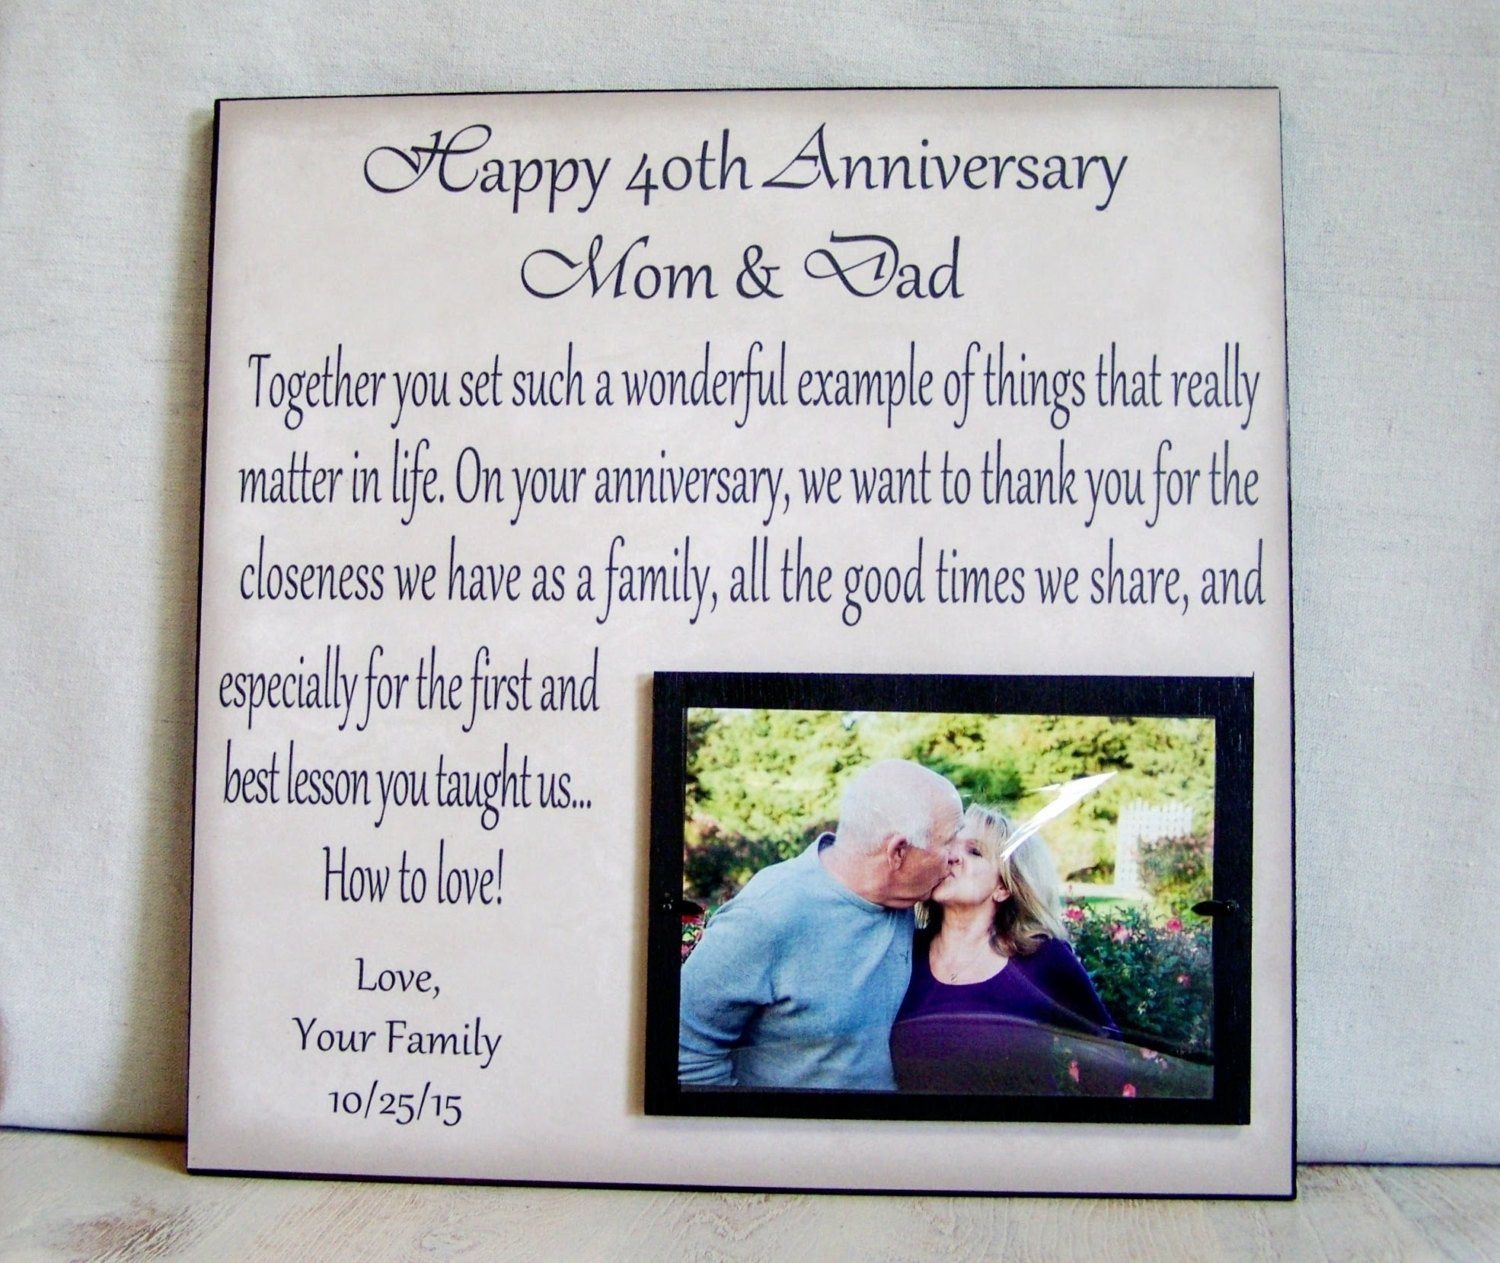 10 Attractive Gift Ideas For Parents Anniversary 30 year anniversary gift gift for parents anniversary kids 30 2021